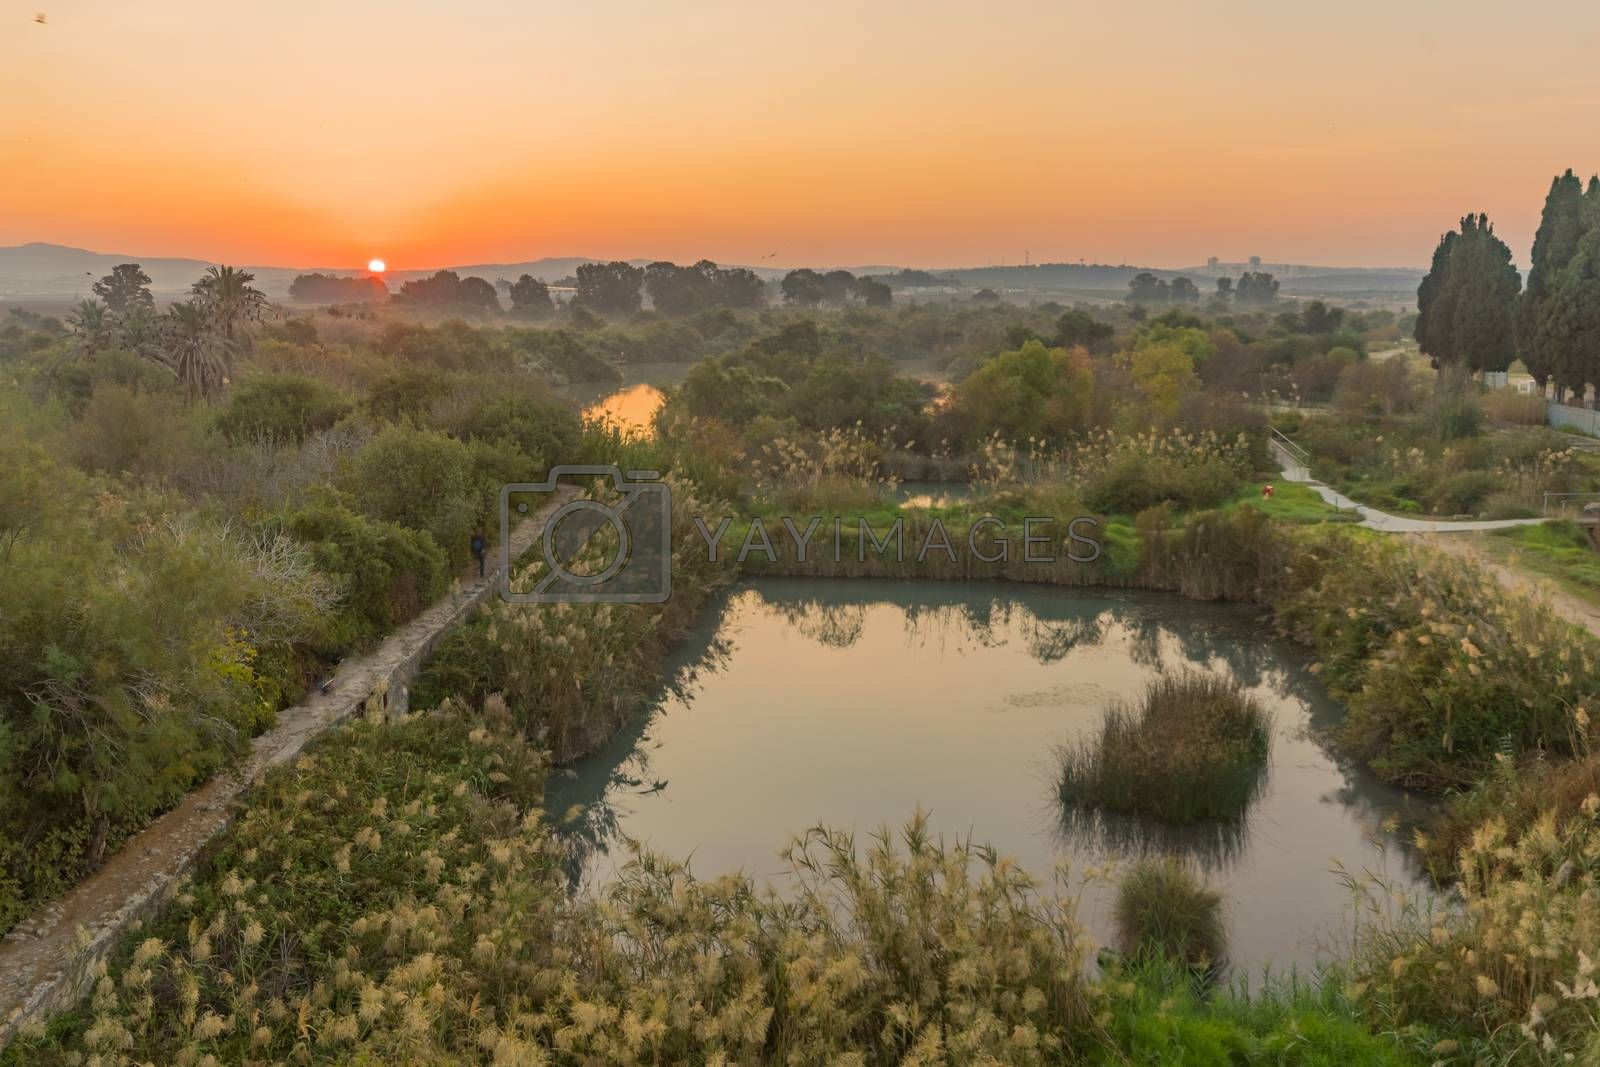 Sunrise view over wetland and ancient canal system, in En Afek nature reserve, northern Israel